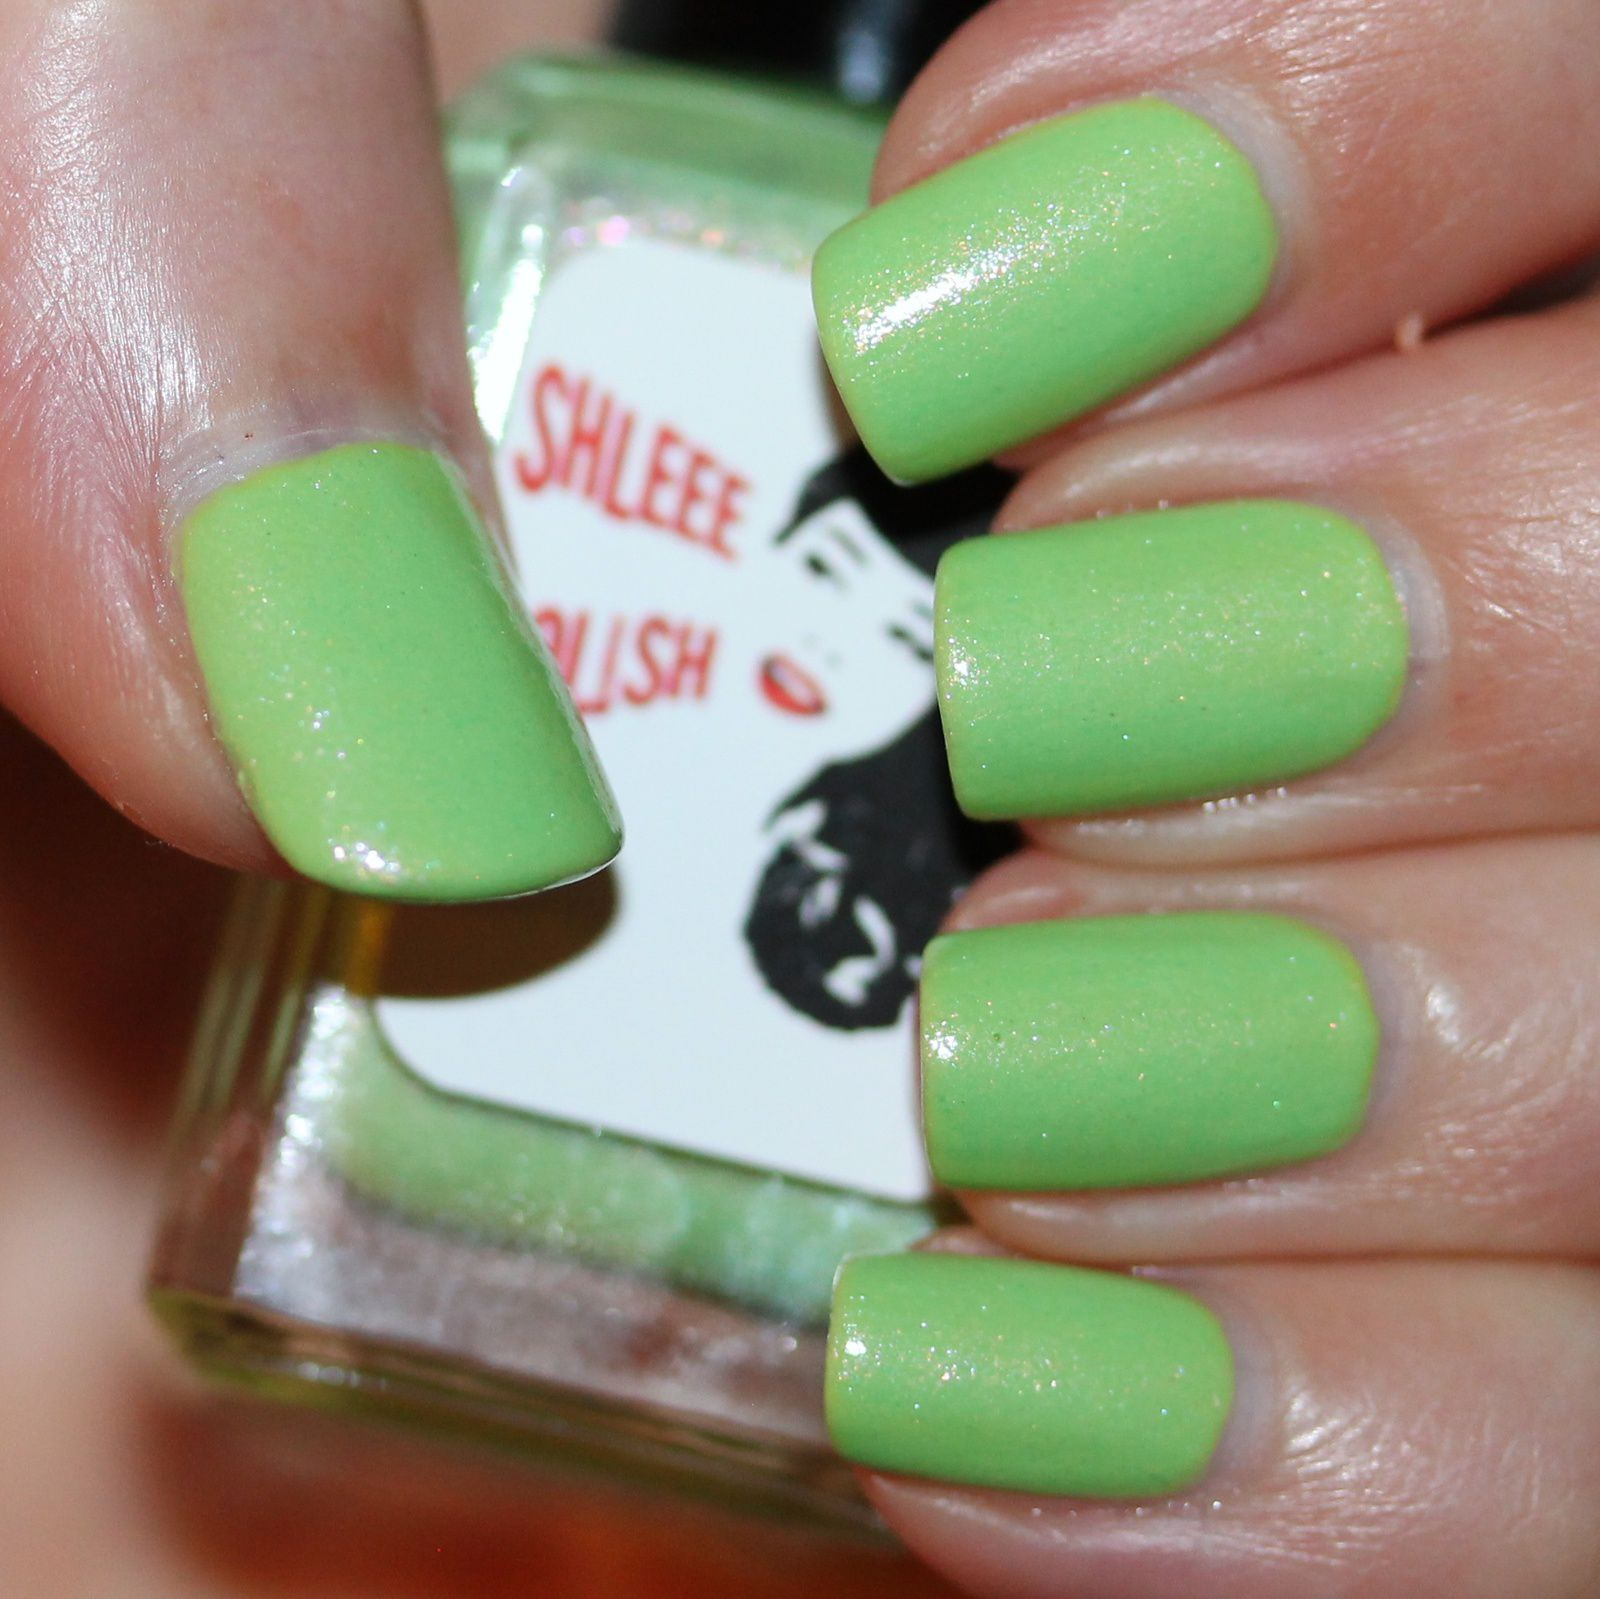 Essie Protein Base Coat / Your Time Green Apple / Shleee Polish High By The Beach 2.0 / Lilypad Lacquer Crystal Clear Top Coat